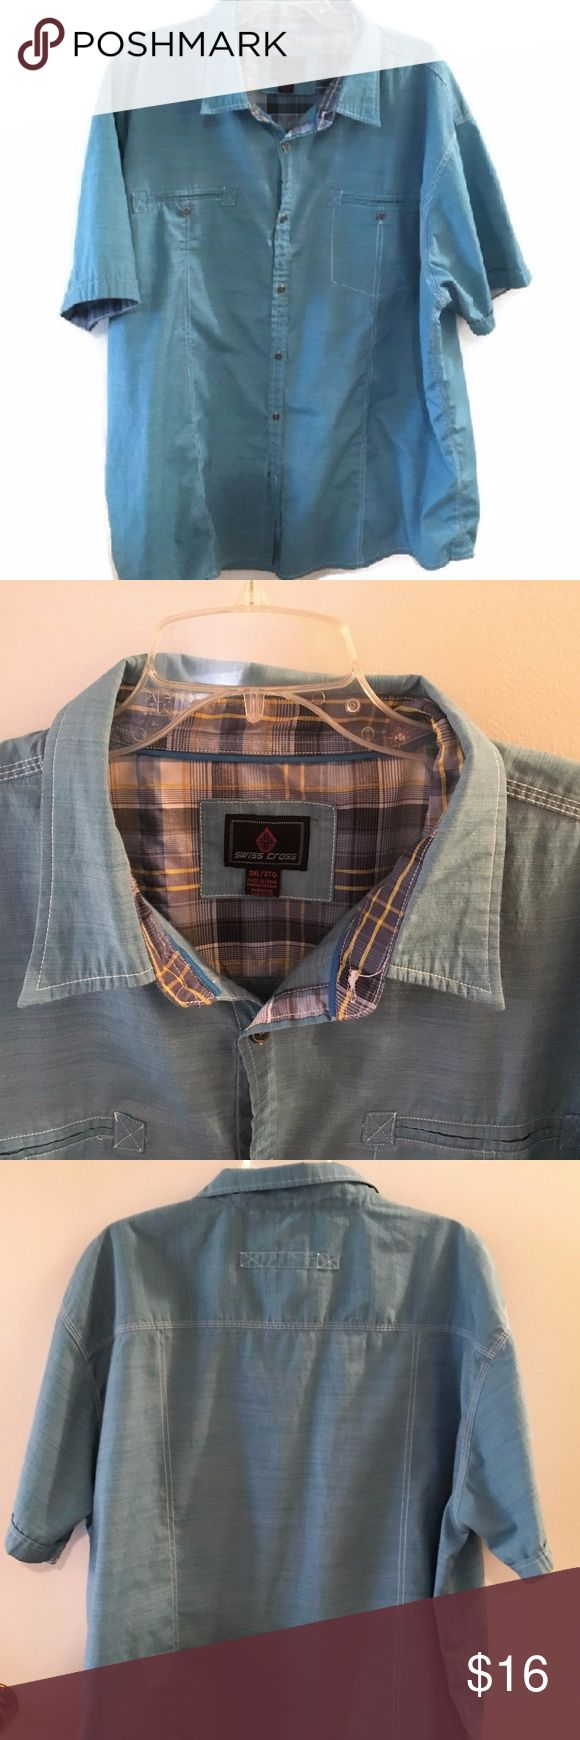 "Swiss Cross Blue Button Shirt - 3XL Men's 3TG Swiss Cross Shirt  60% Cotton / 40% Polyester Short Sleeve Size 3XL/3TG Length: 31 Armpit to Armpit: 30""  ** EXCELLENT Used Condition ** Kept in Smoke Free Home Swiss Cross Shirts Casual Button Down Shirts"